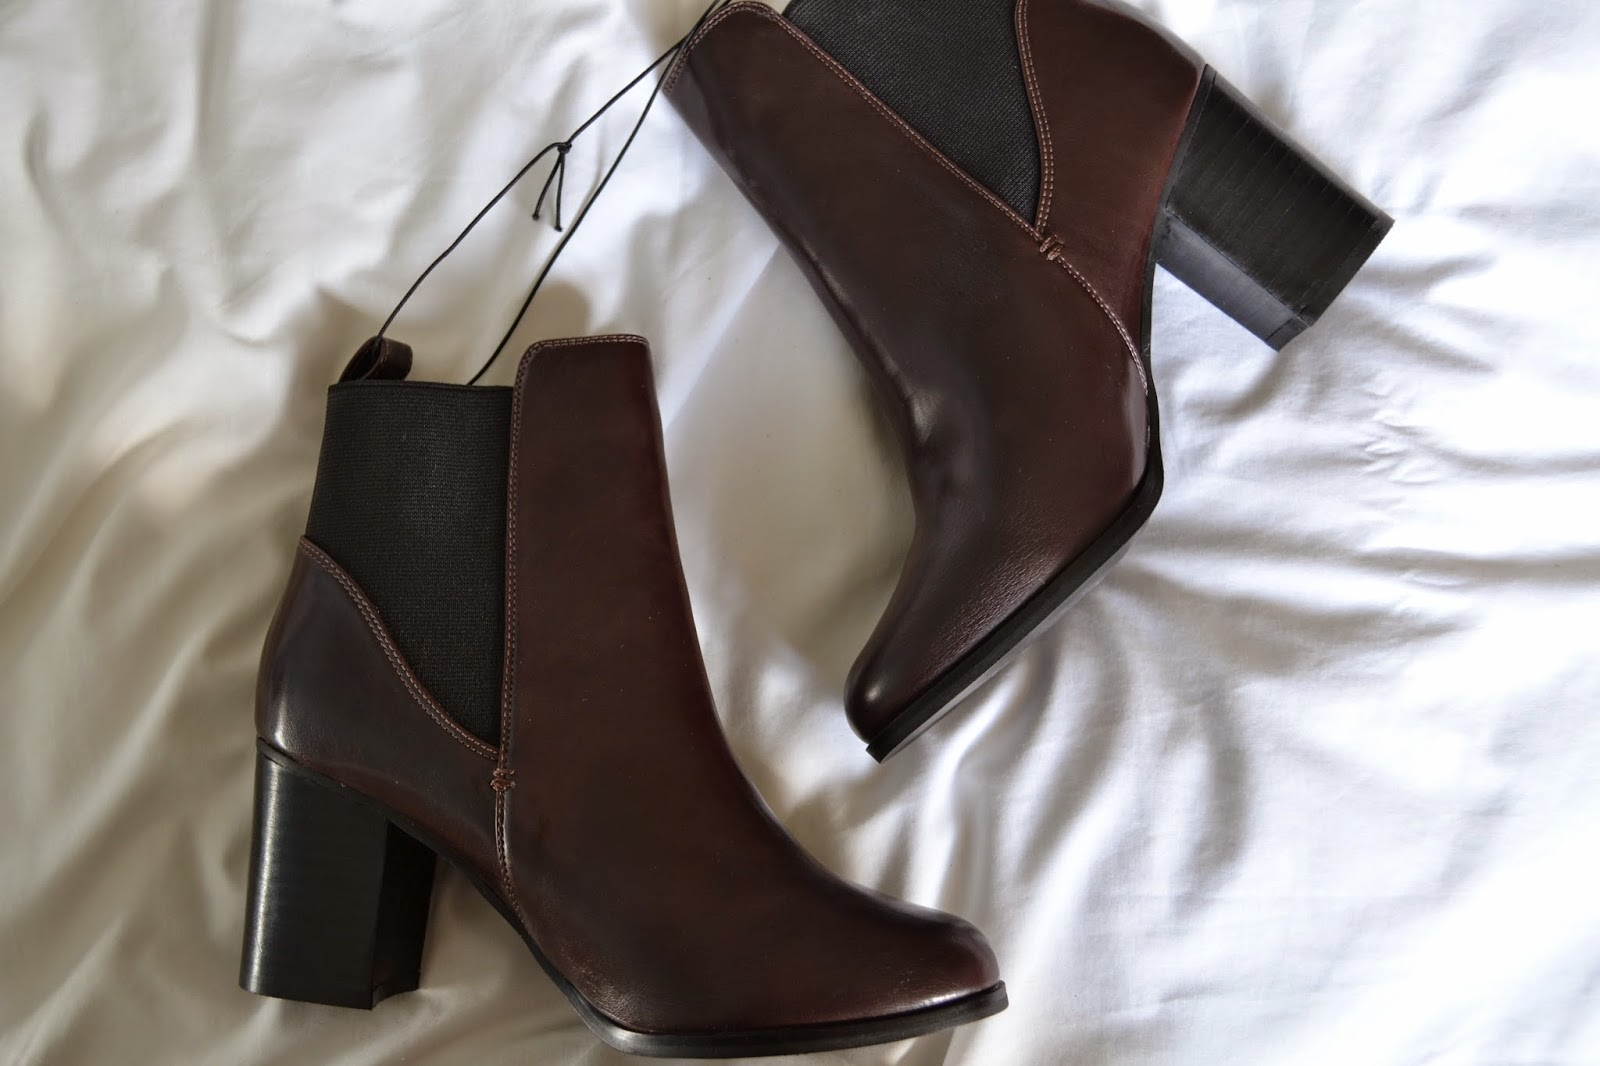 Lined Boots H&m H&m Burgandy Ankle Boots